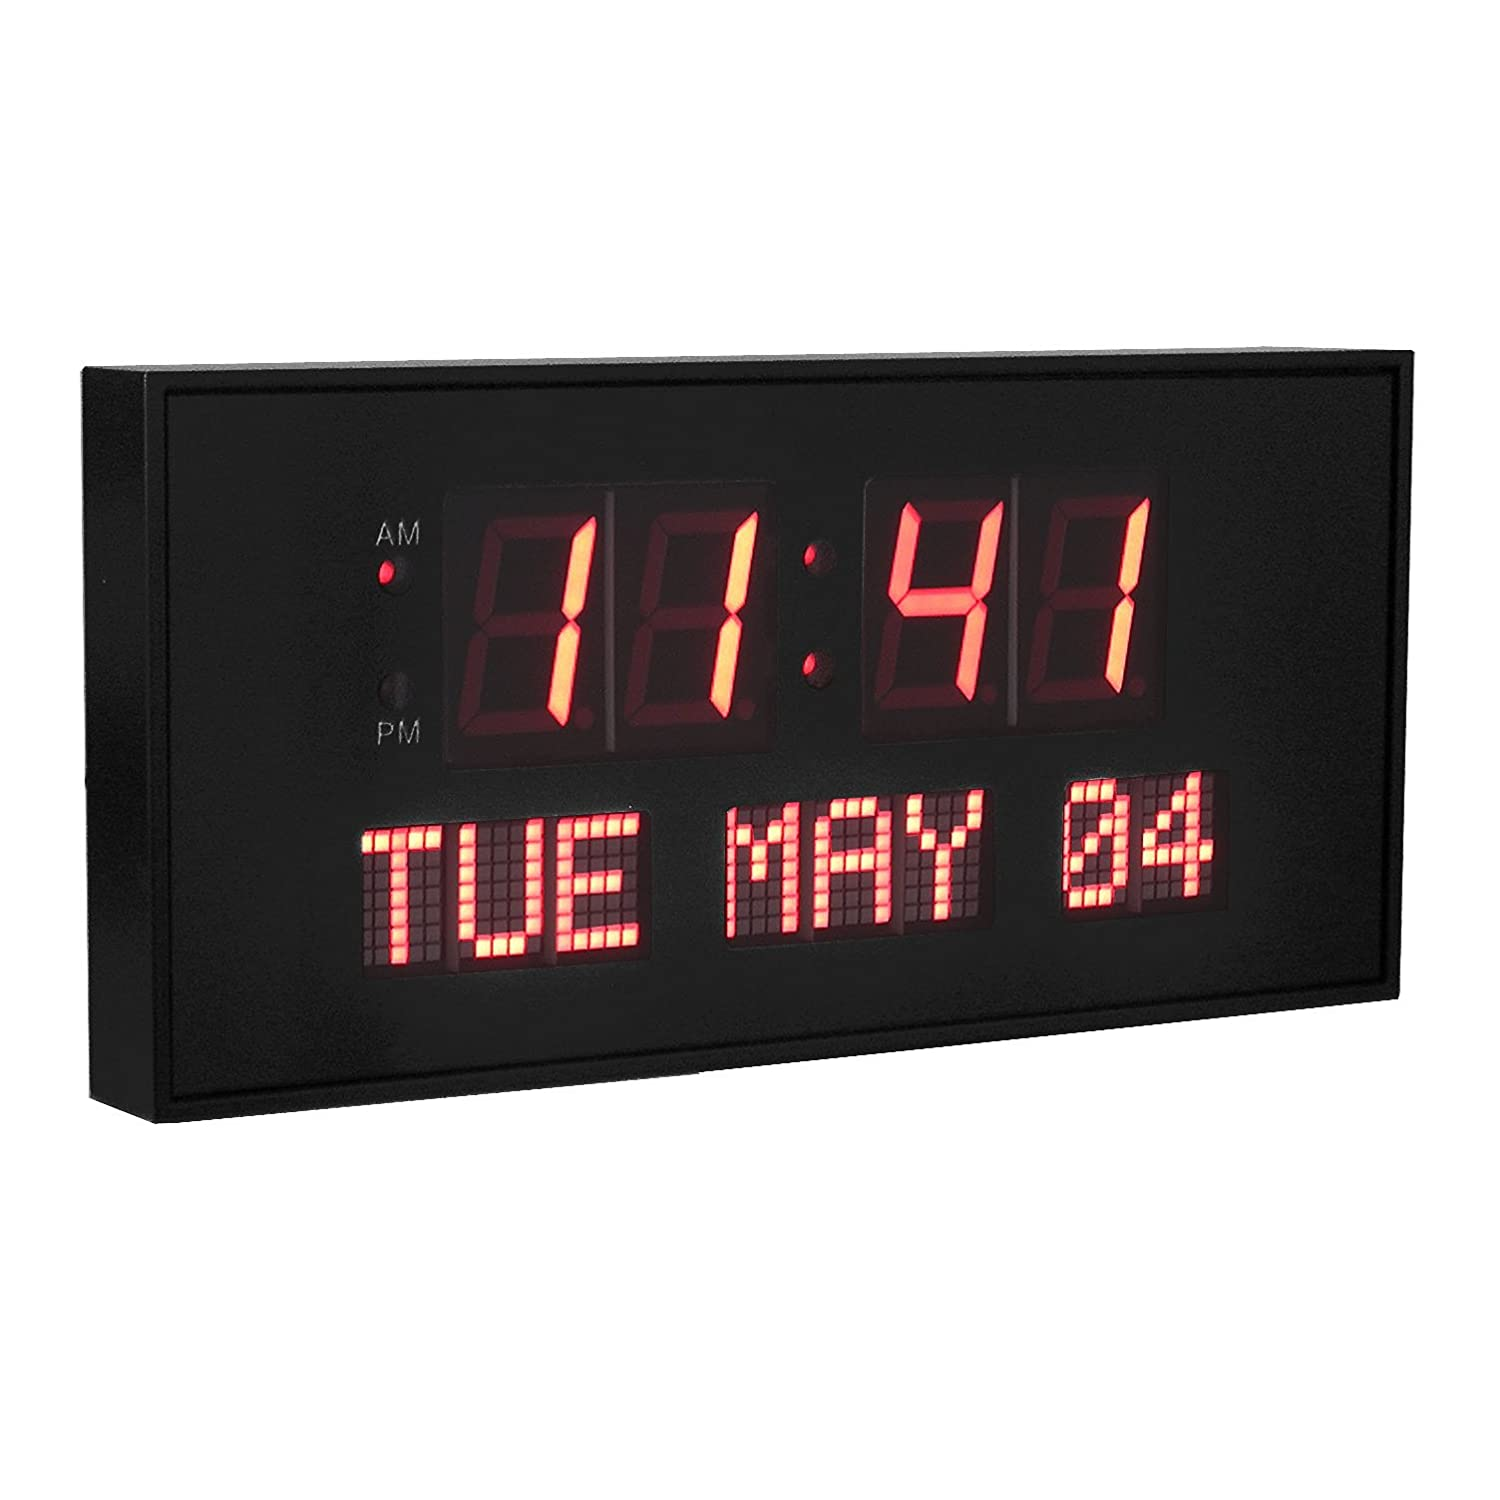 Amazon dynamic living oversized 16 inch x 75 inch digital amazon dynamic living oversized 16 inch x 75 inch digital led calendar wall clock home audio theater amipublicfo Images